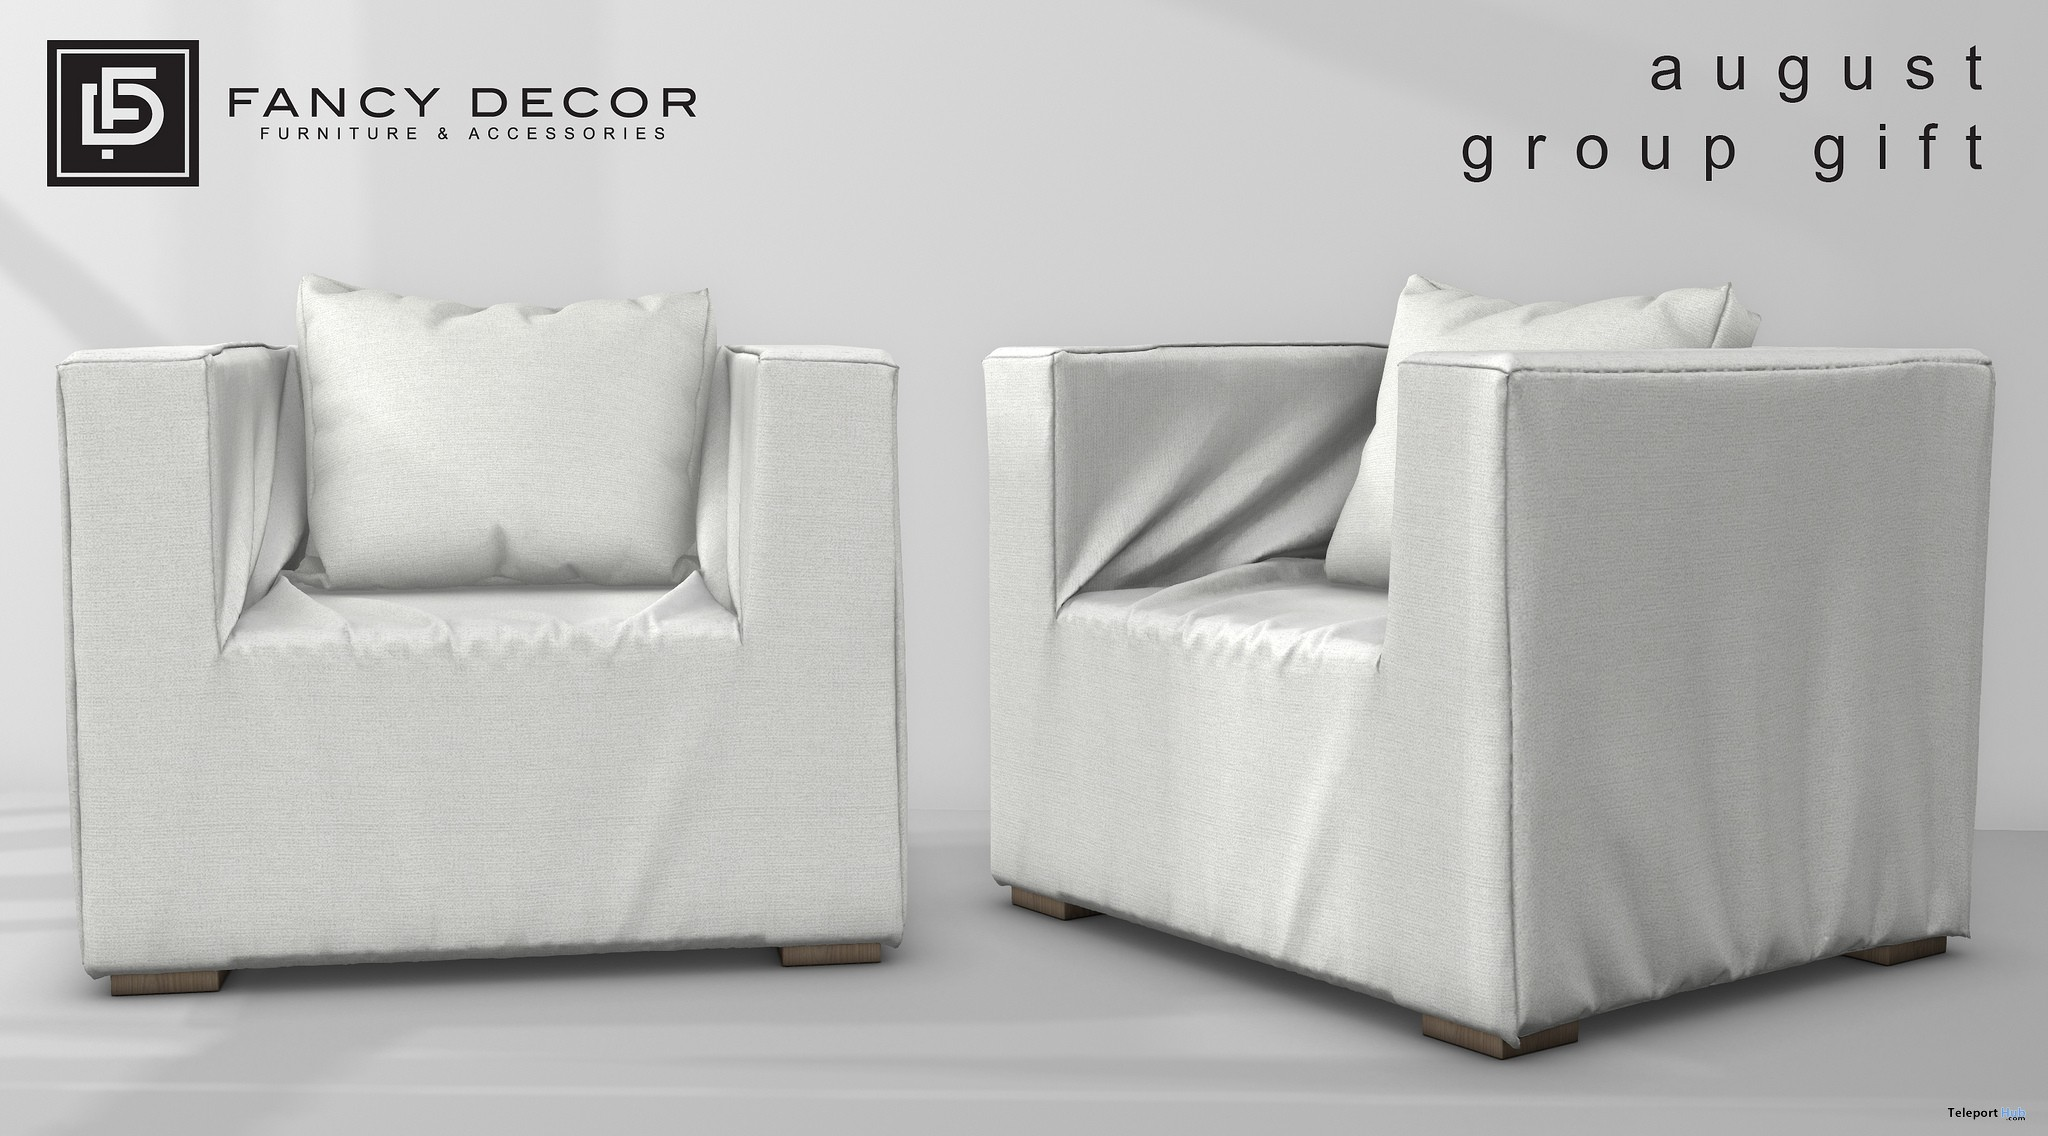 Slipcover Armchair August 2018 Group Gift by Fancy Decor - Teleport Hub - teleporthub.com